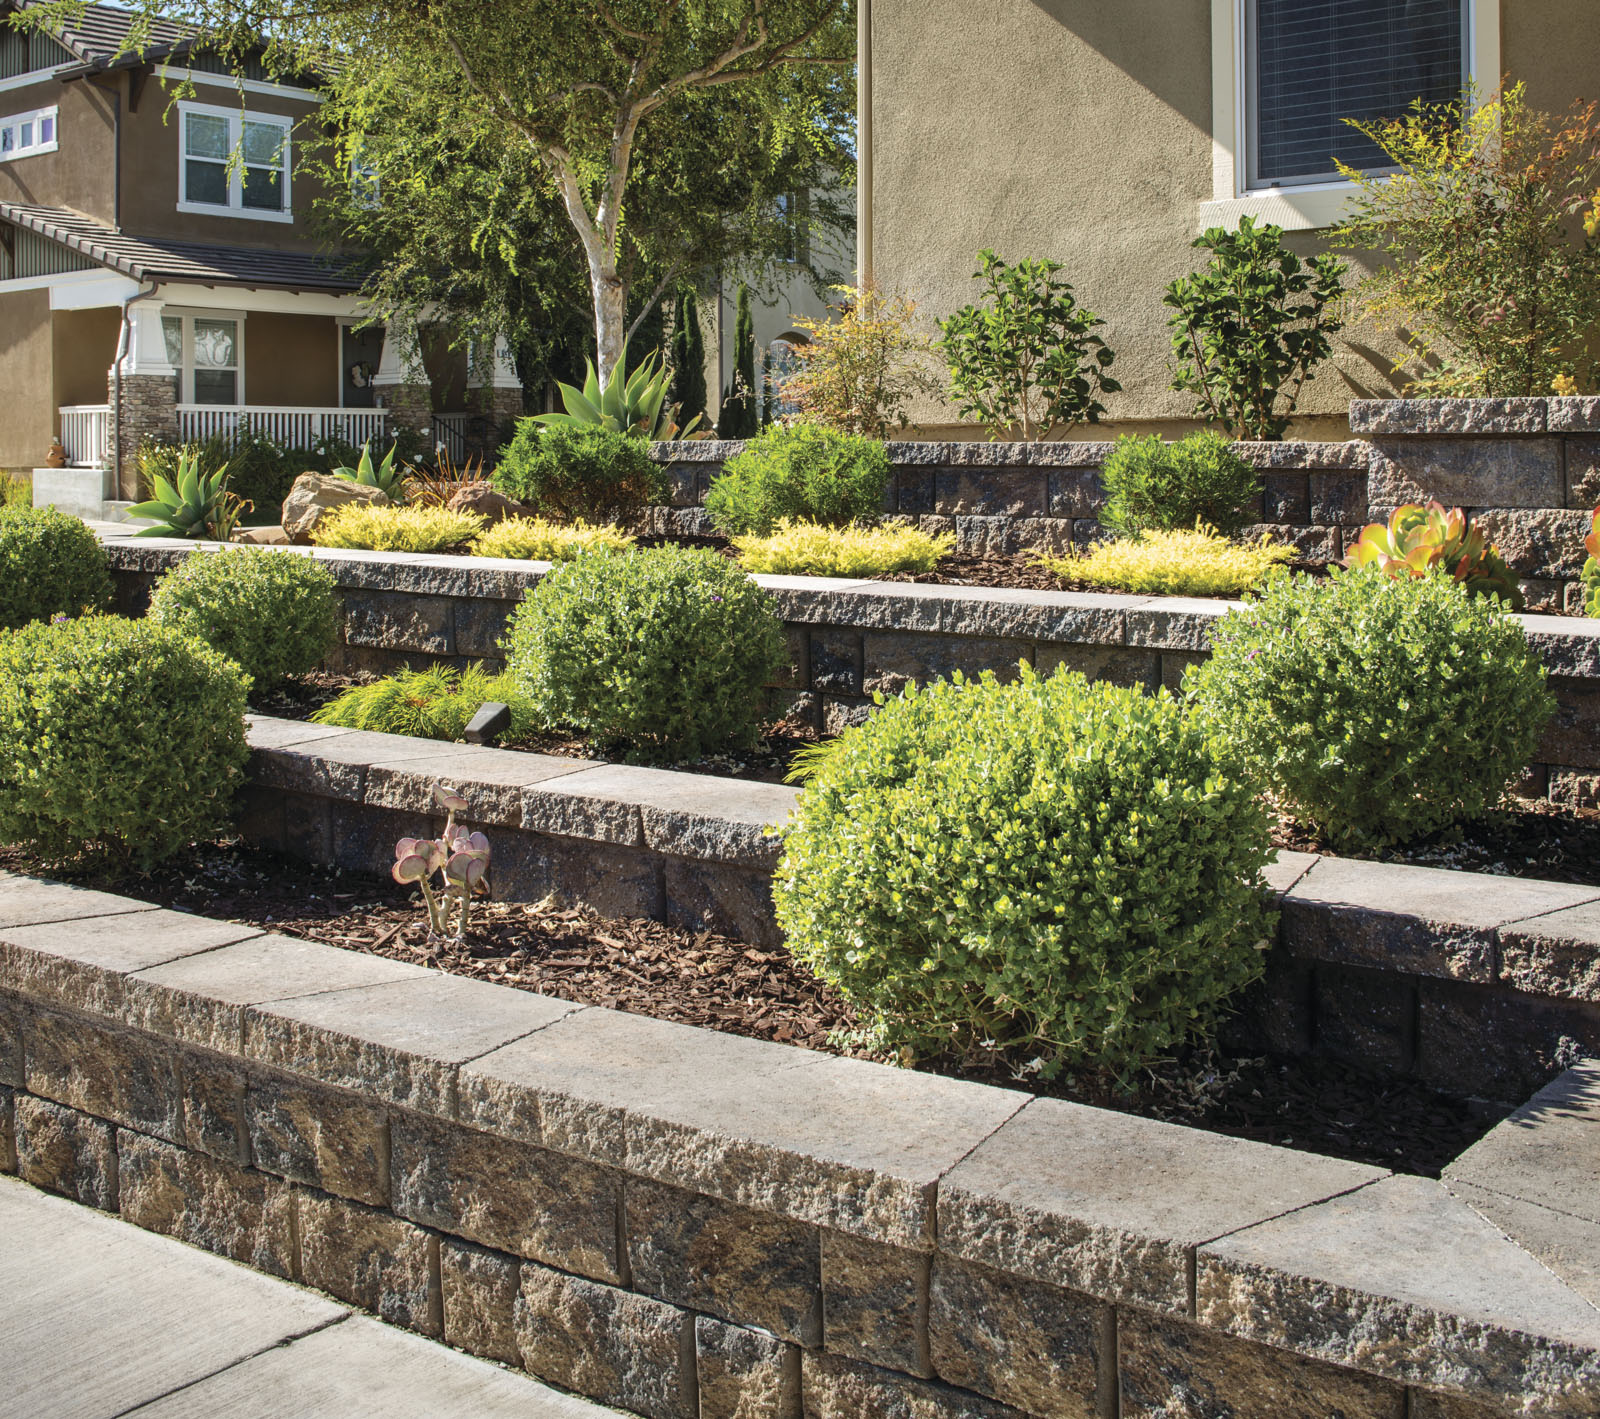 terraced paving stone walls